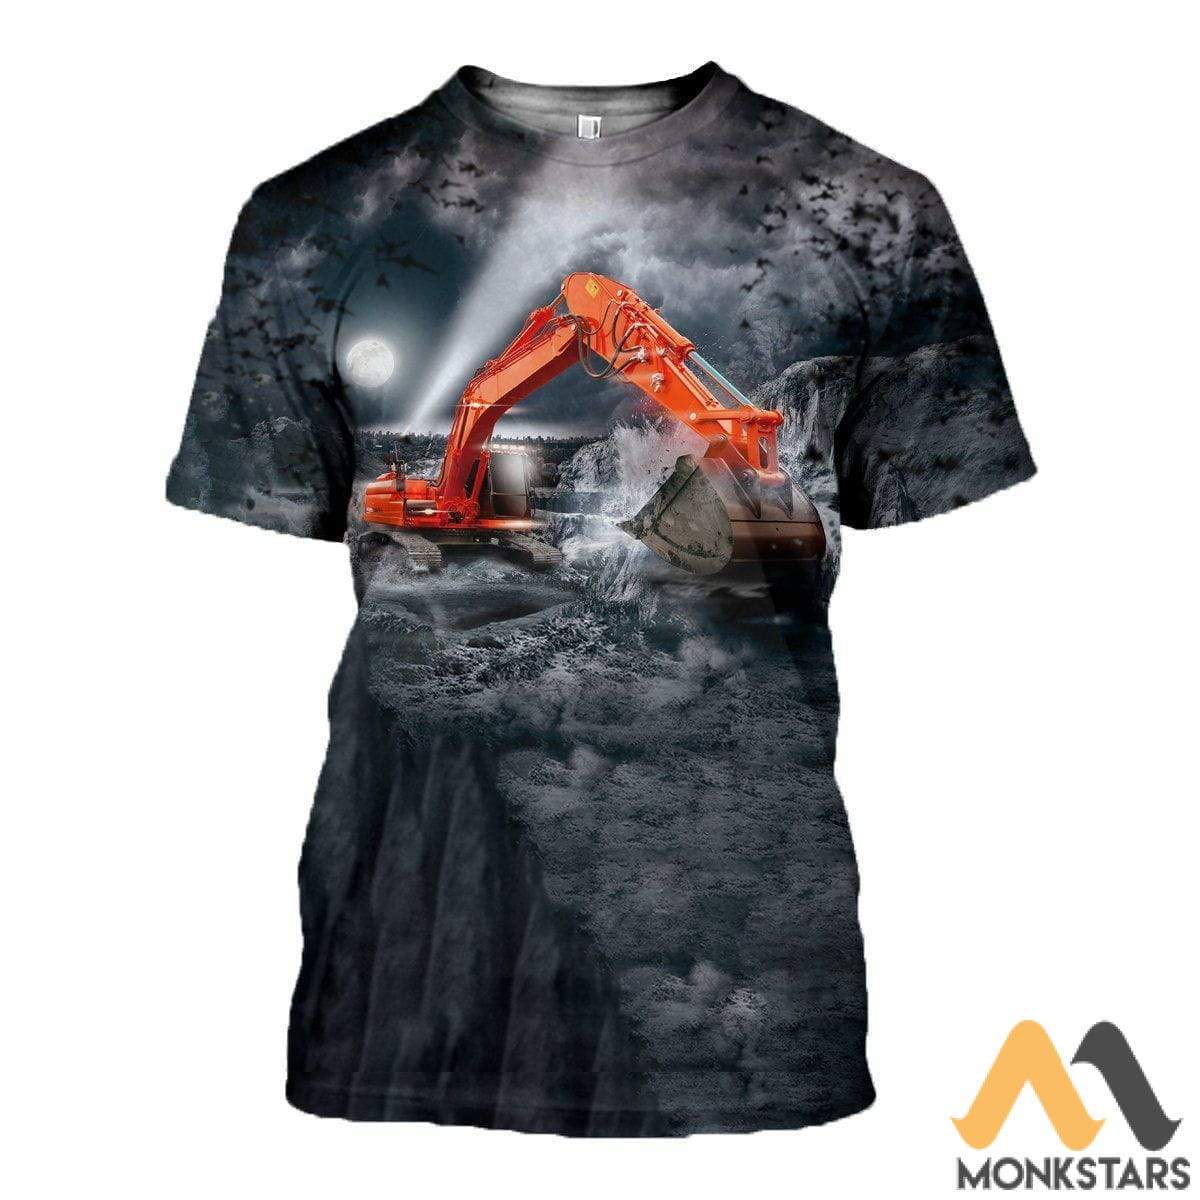 3D All Over Printed Excavator Shirts And Shorts T-Shirt / S Clothes